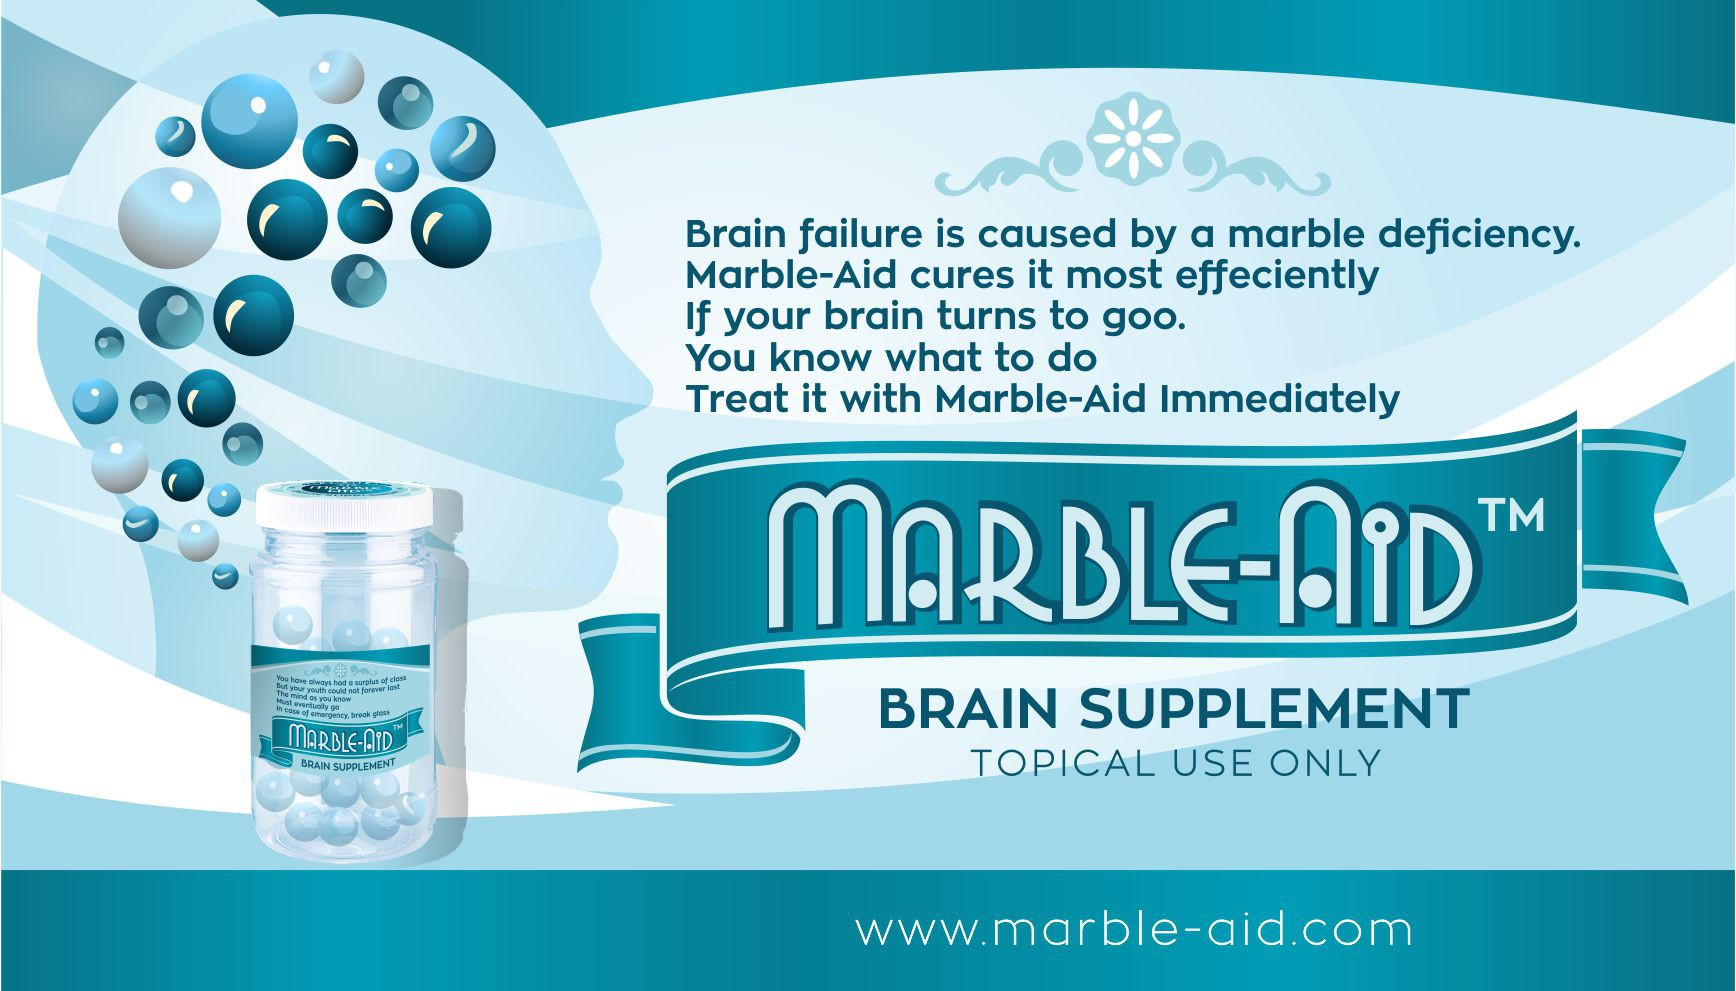 Label for Marble-Aid Brain Suppliment